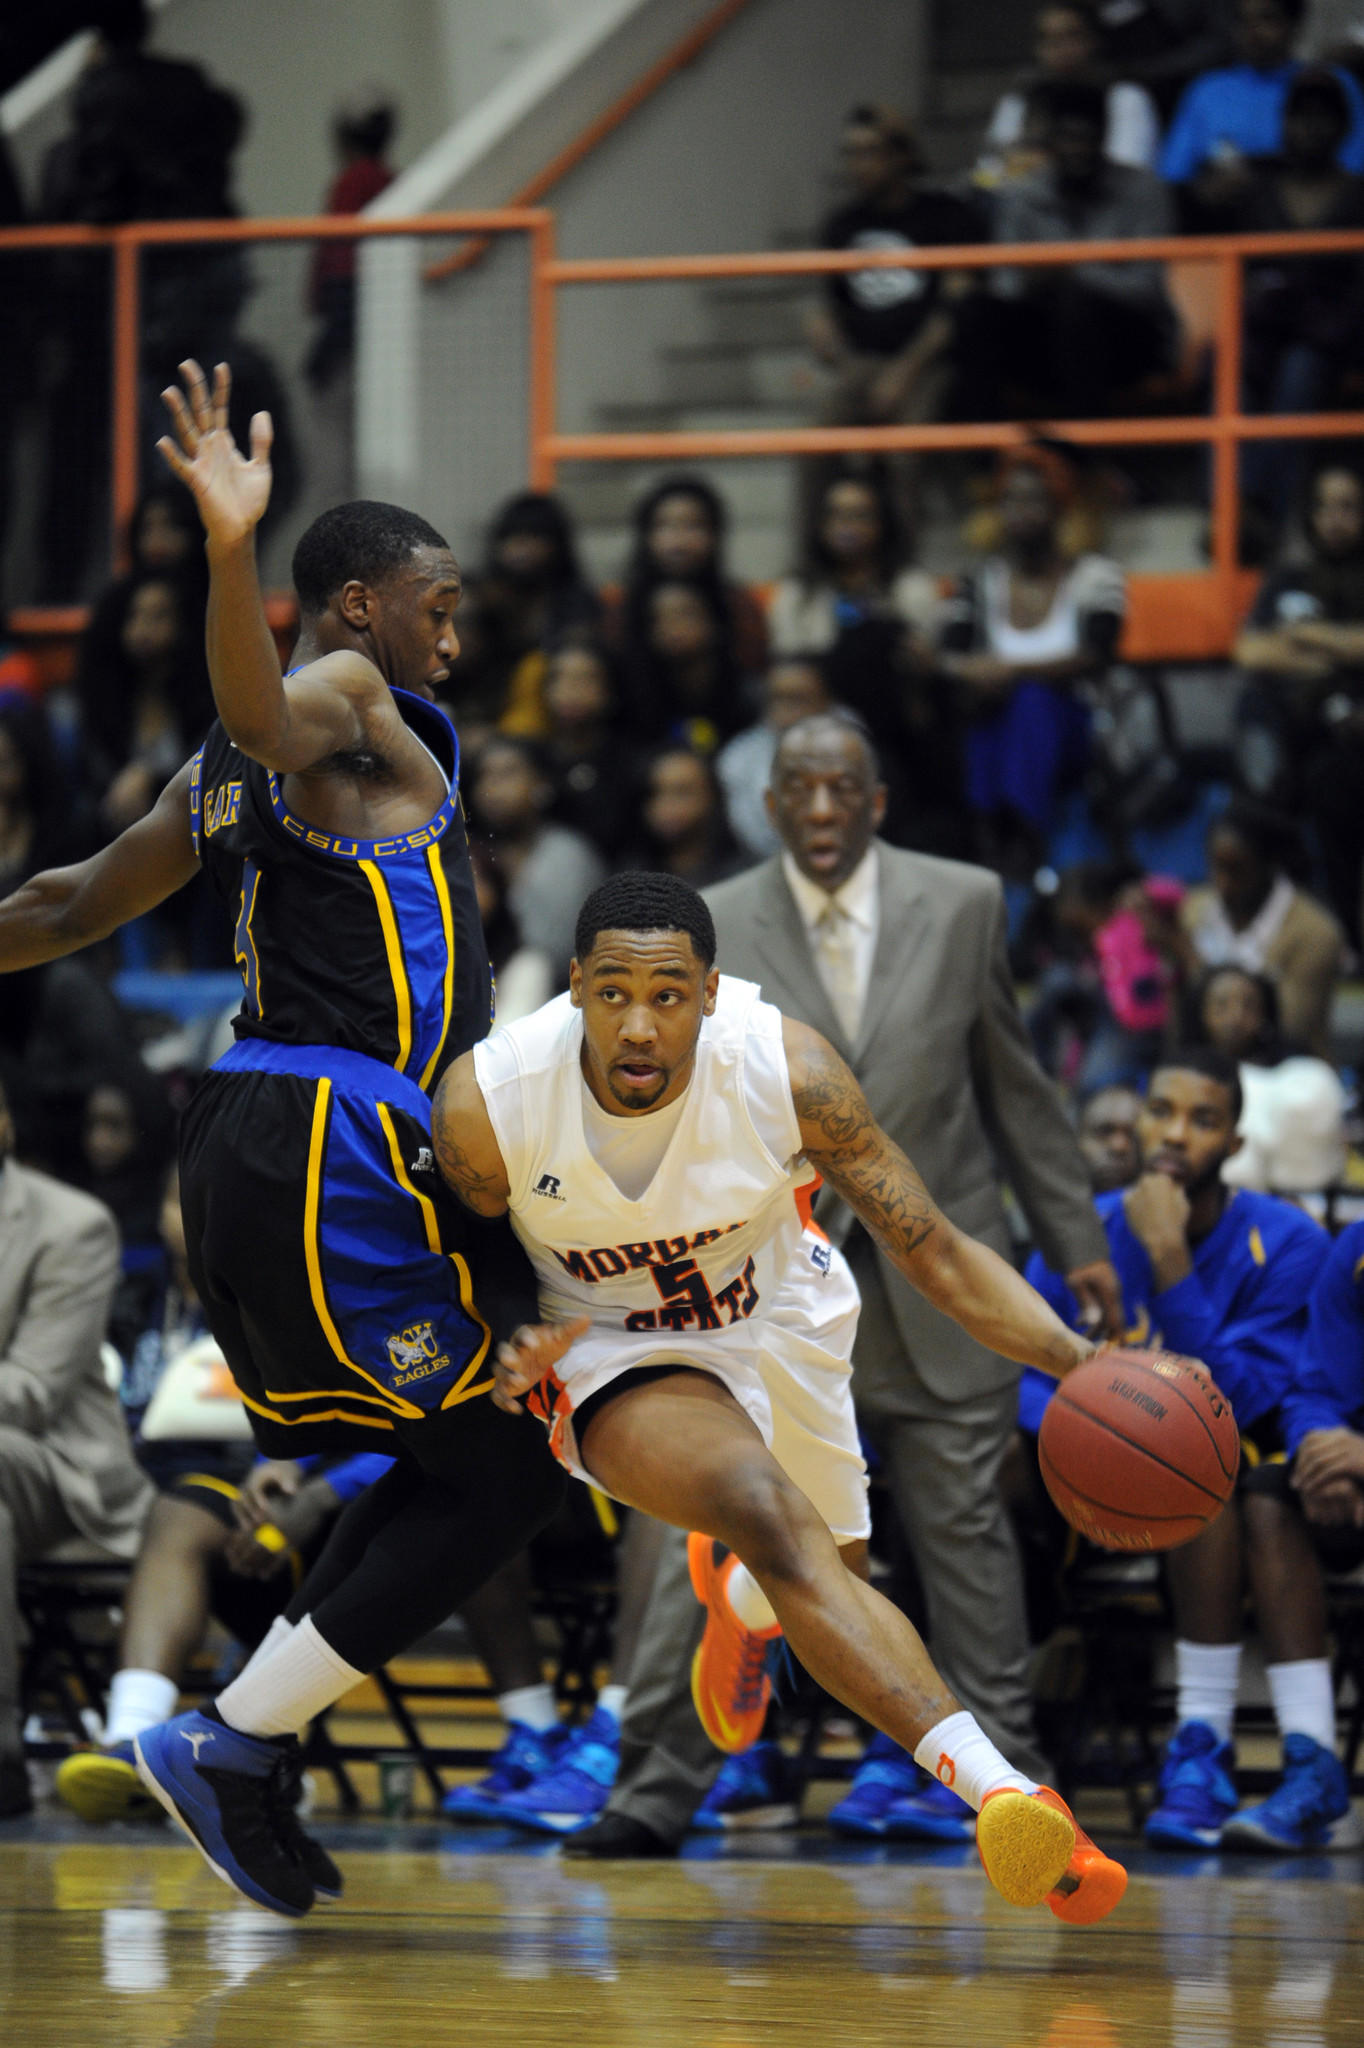 Morgan State's Justin Black drives past Coppin State's Dallas Gary.